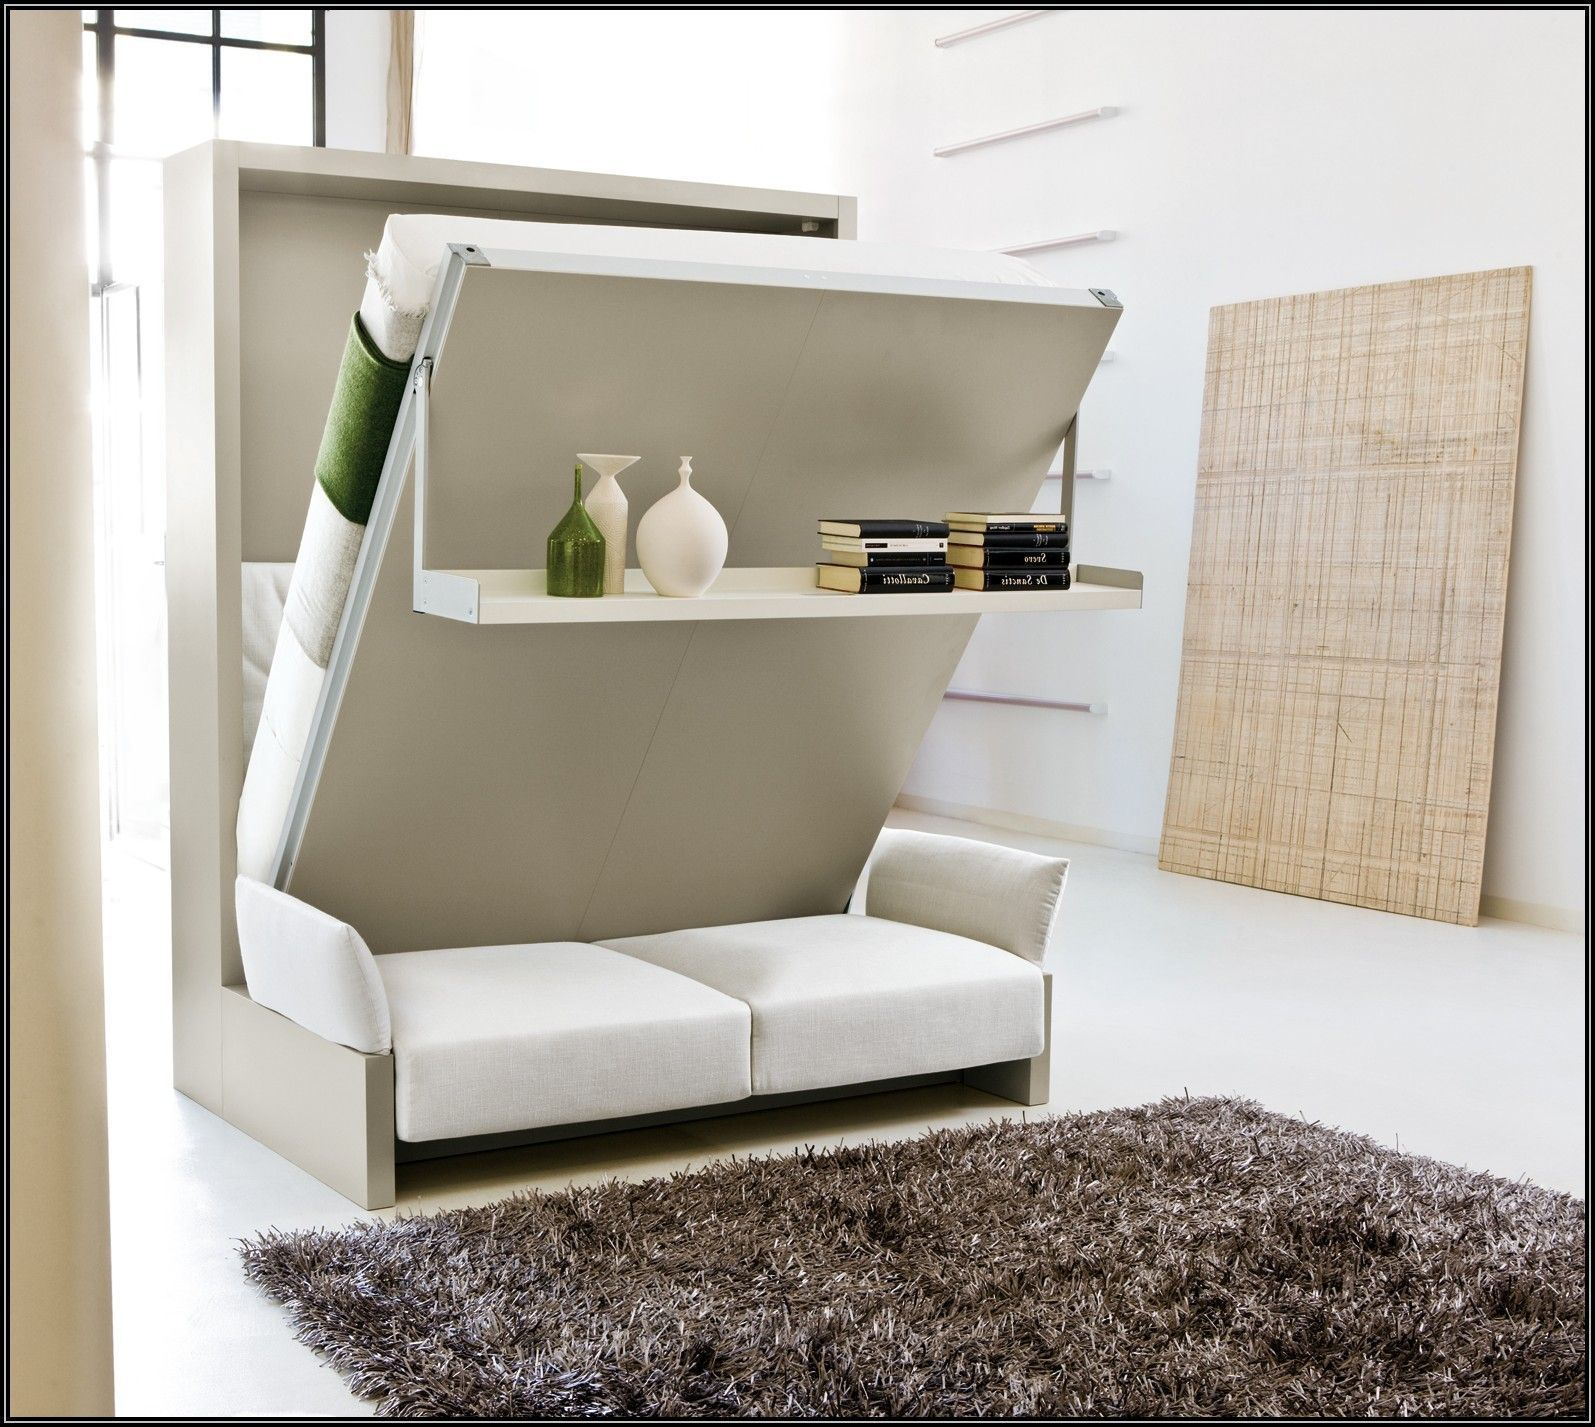 Save Small Space In A Bedroom Using Murphy Bed Ikea Outstanding Murphy Bed Ikea With Convertible Sof Murphy Bed Ikea Murphy Bed Couch Contemporary Murphy Beds